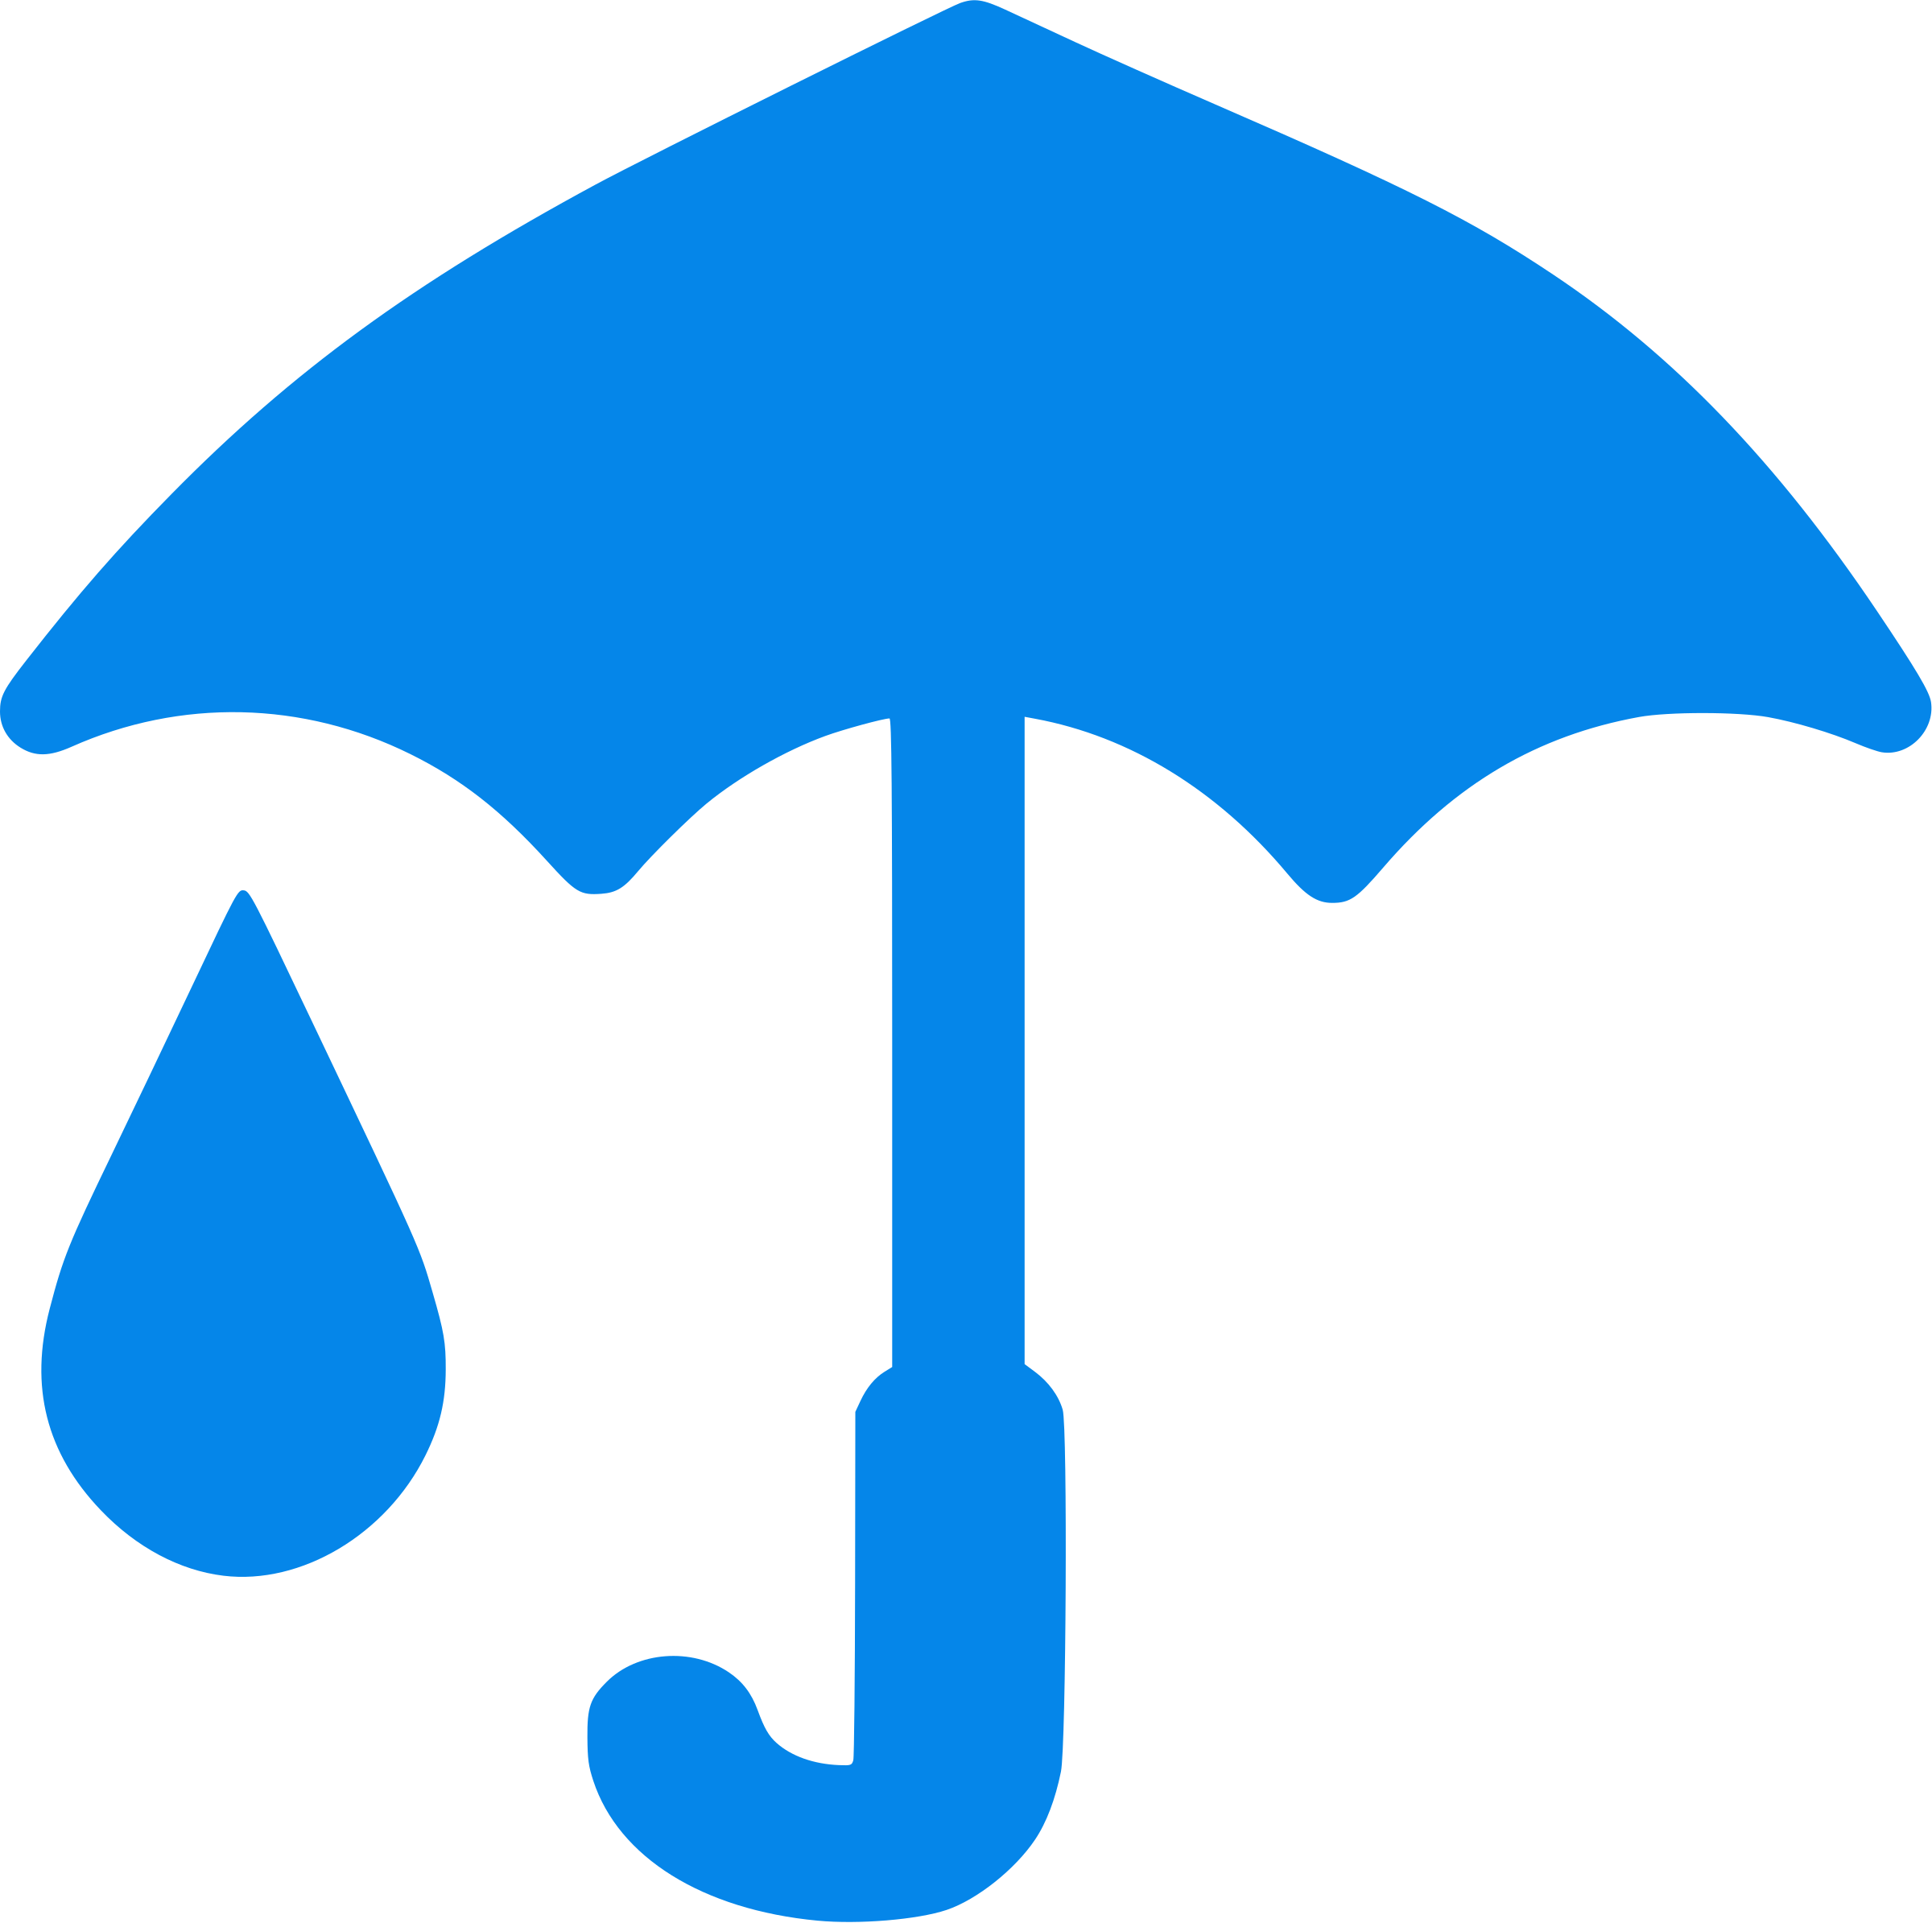 Cute raindrop clipart free images 2 image.